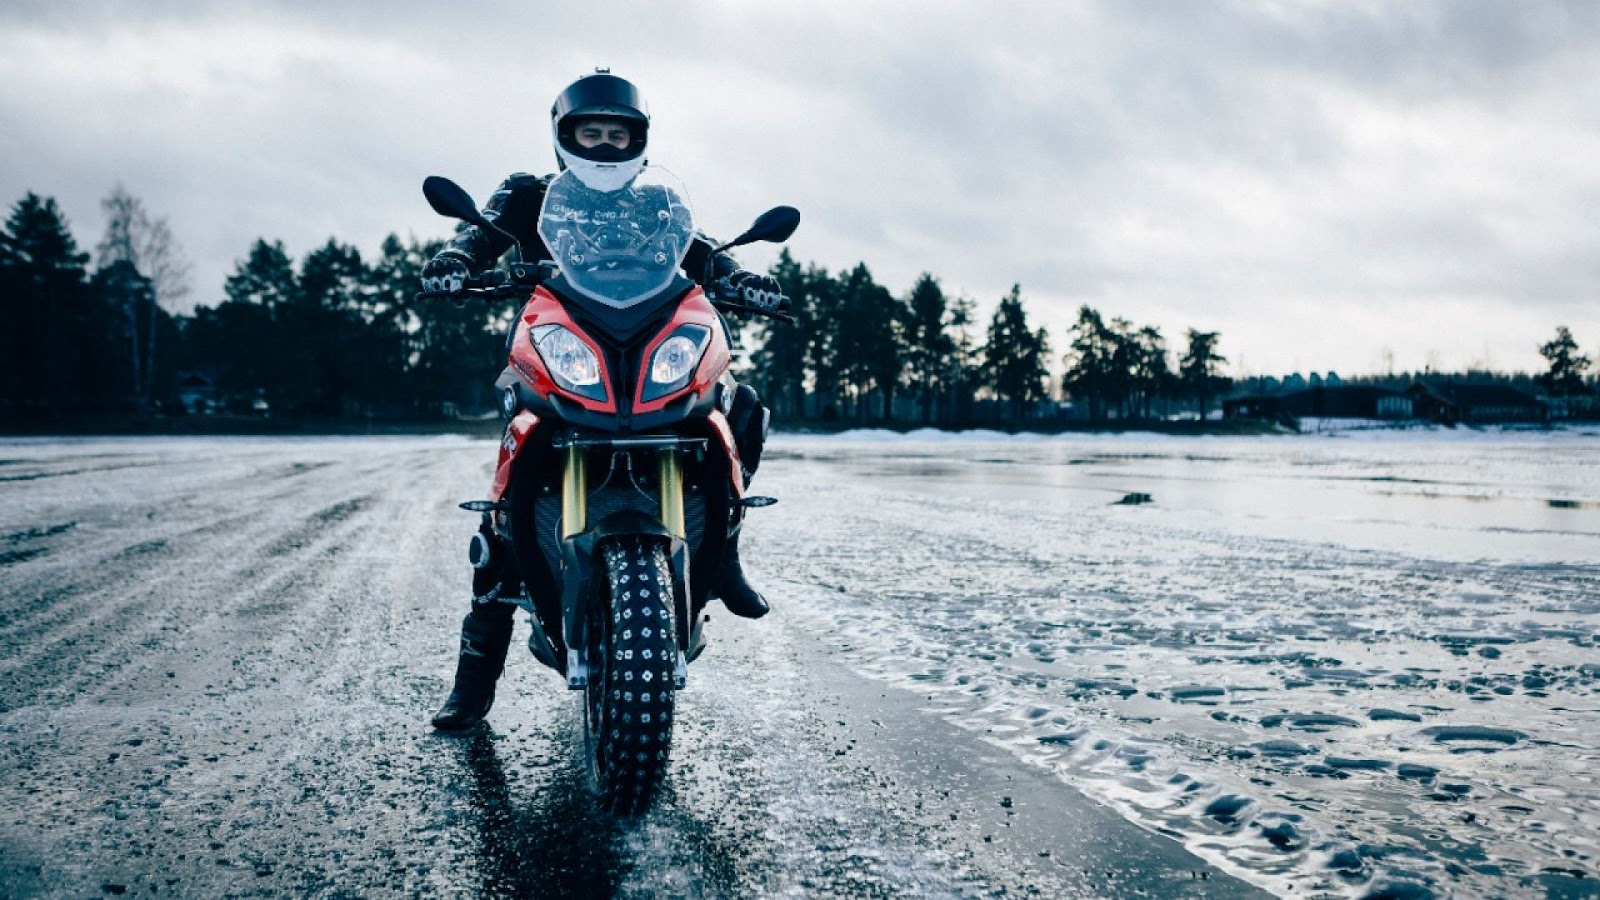 Motorcycle Trip Planning: BMW MOTORRAD CHRISTMAS GIFT GUIDE